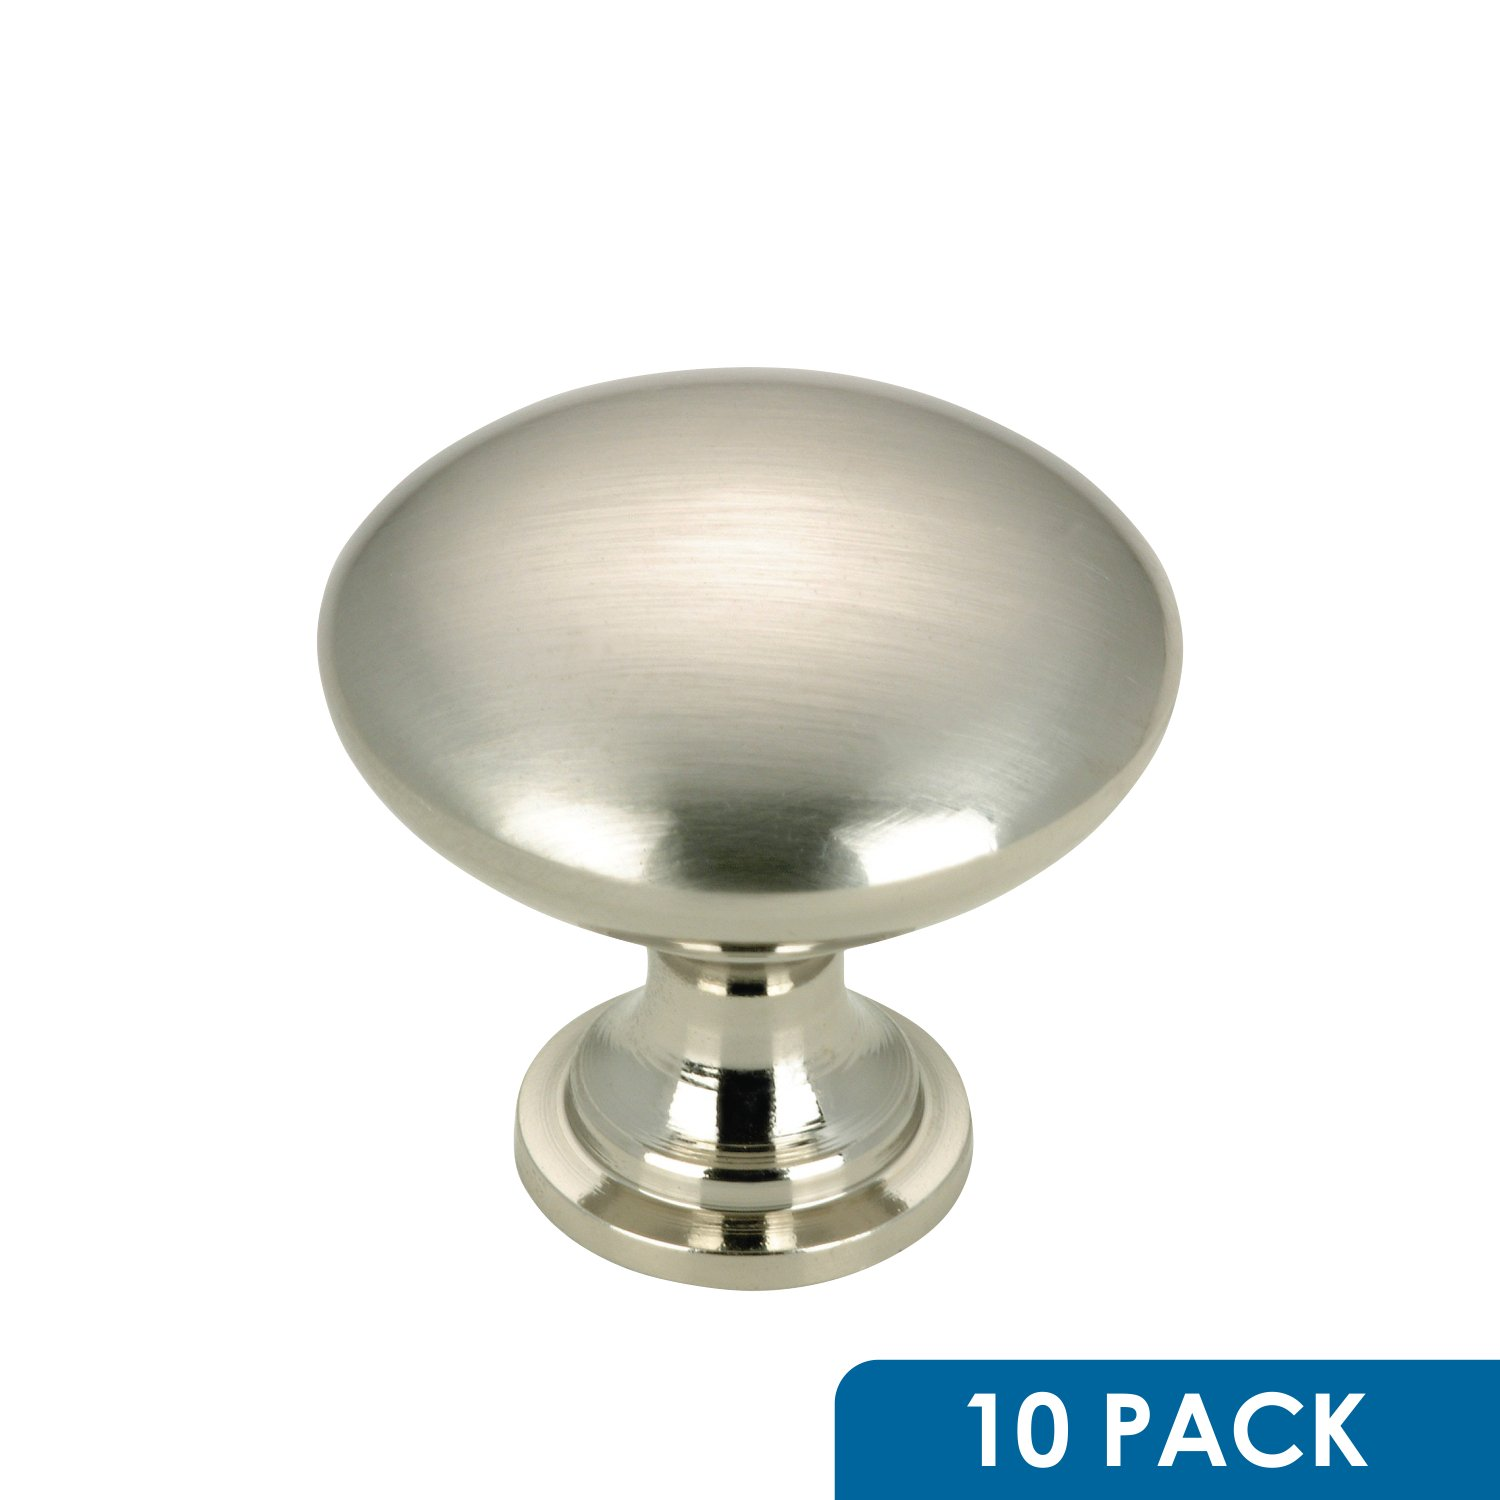 "10 Pack - Rok Hardware Contemporary Metal Knob, Brushed Nickel, 1-3/16"" Diameter ROKK101BN"